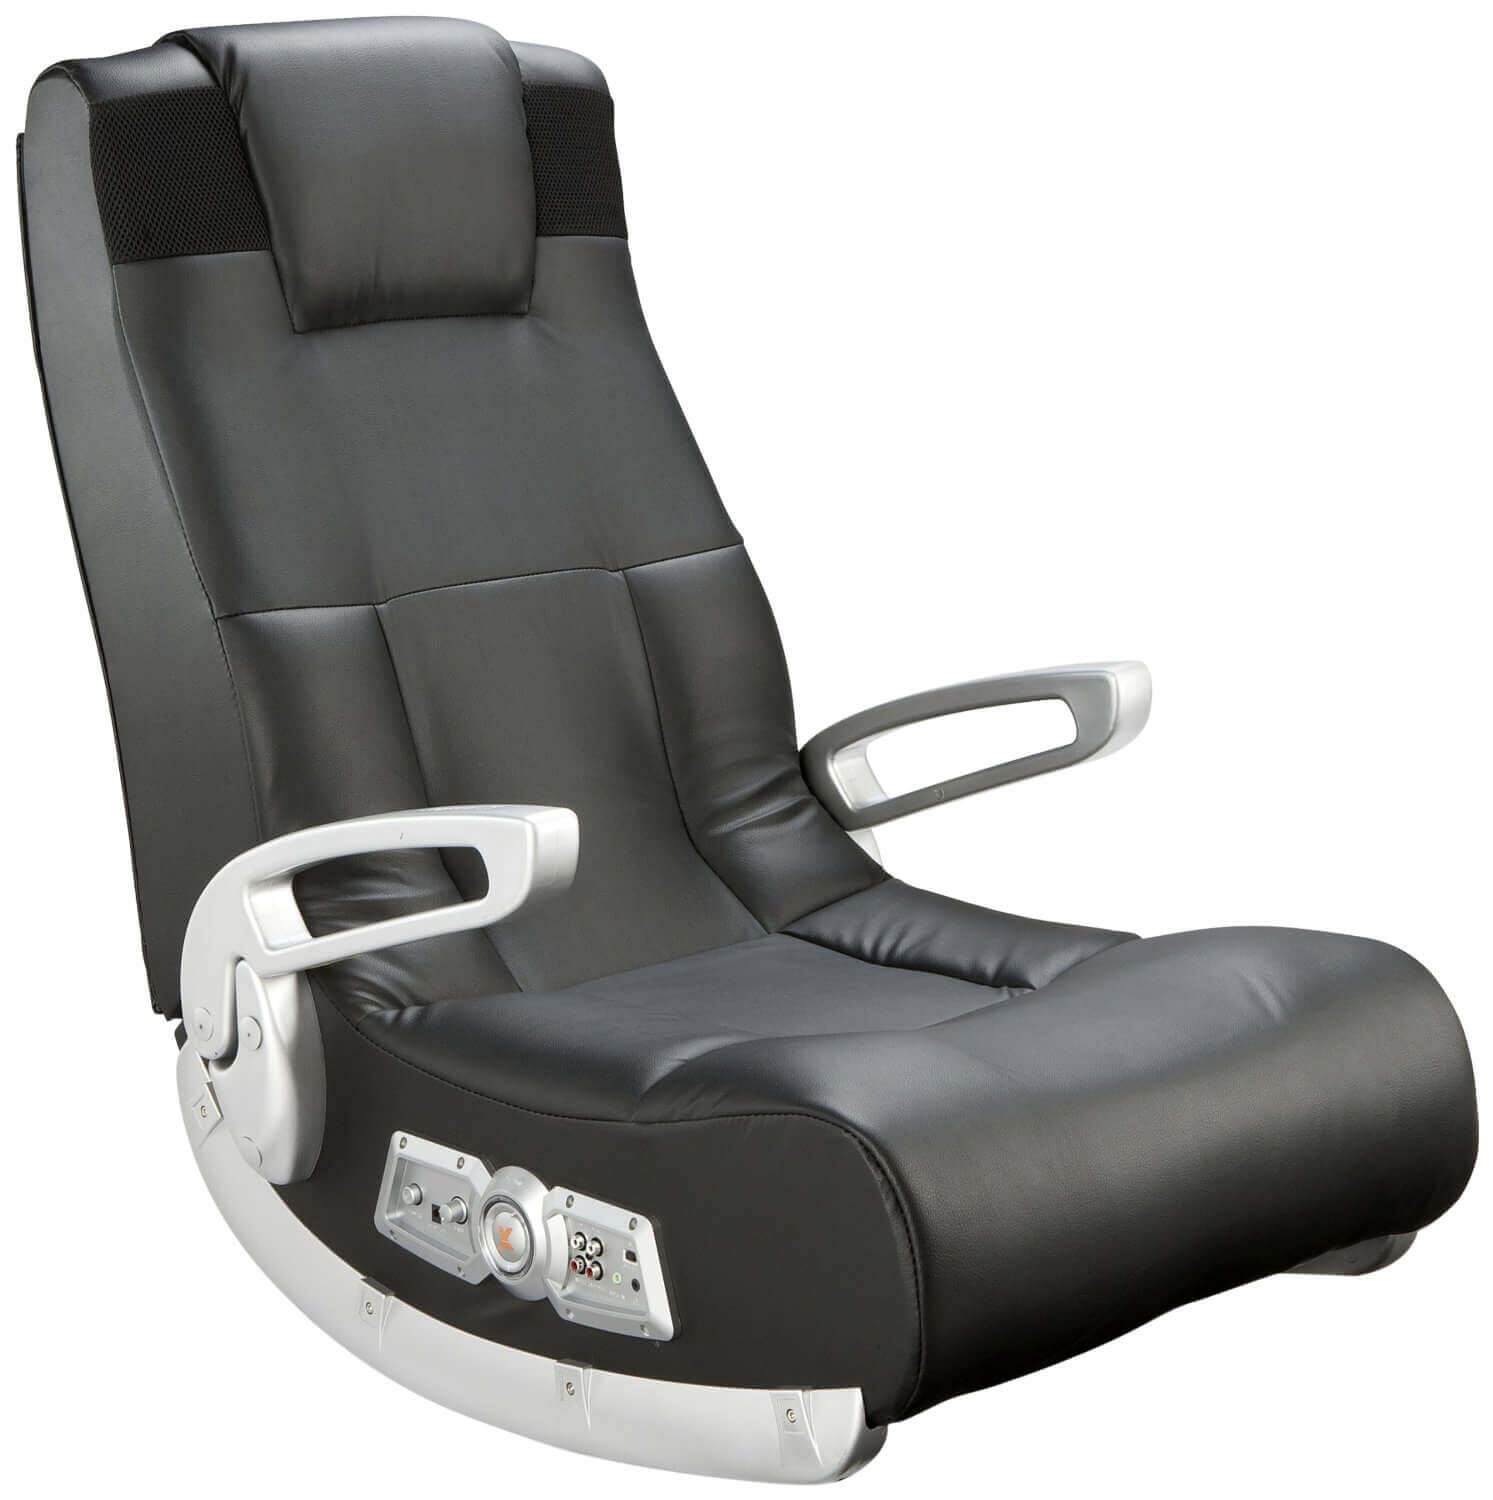 Video Game Chairs Best X Rocker Gaming Chairs Buyer Guide Reviews